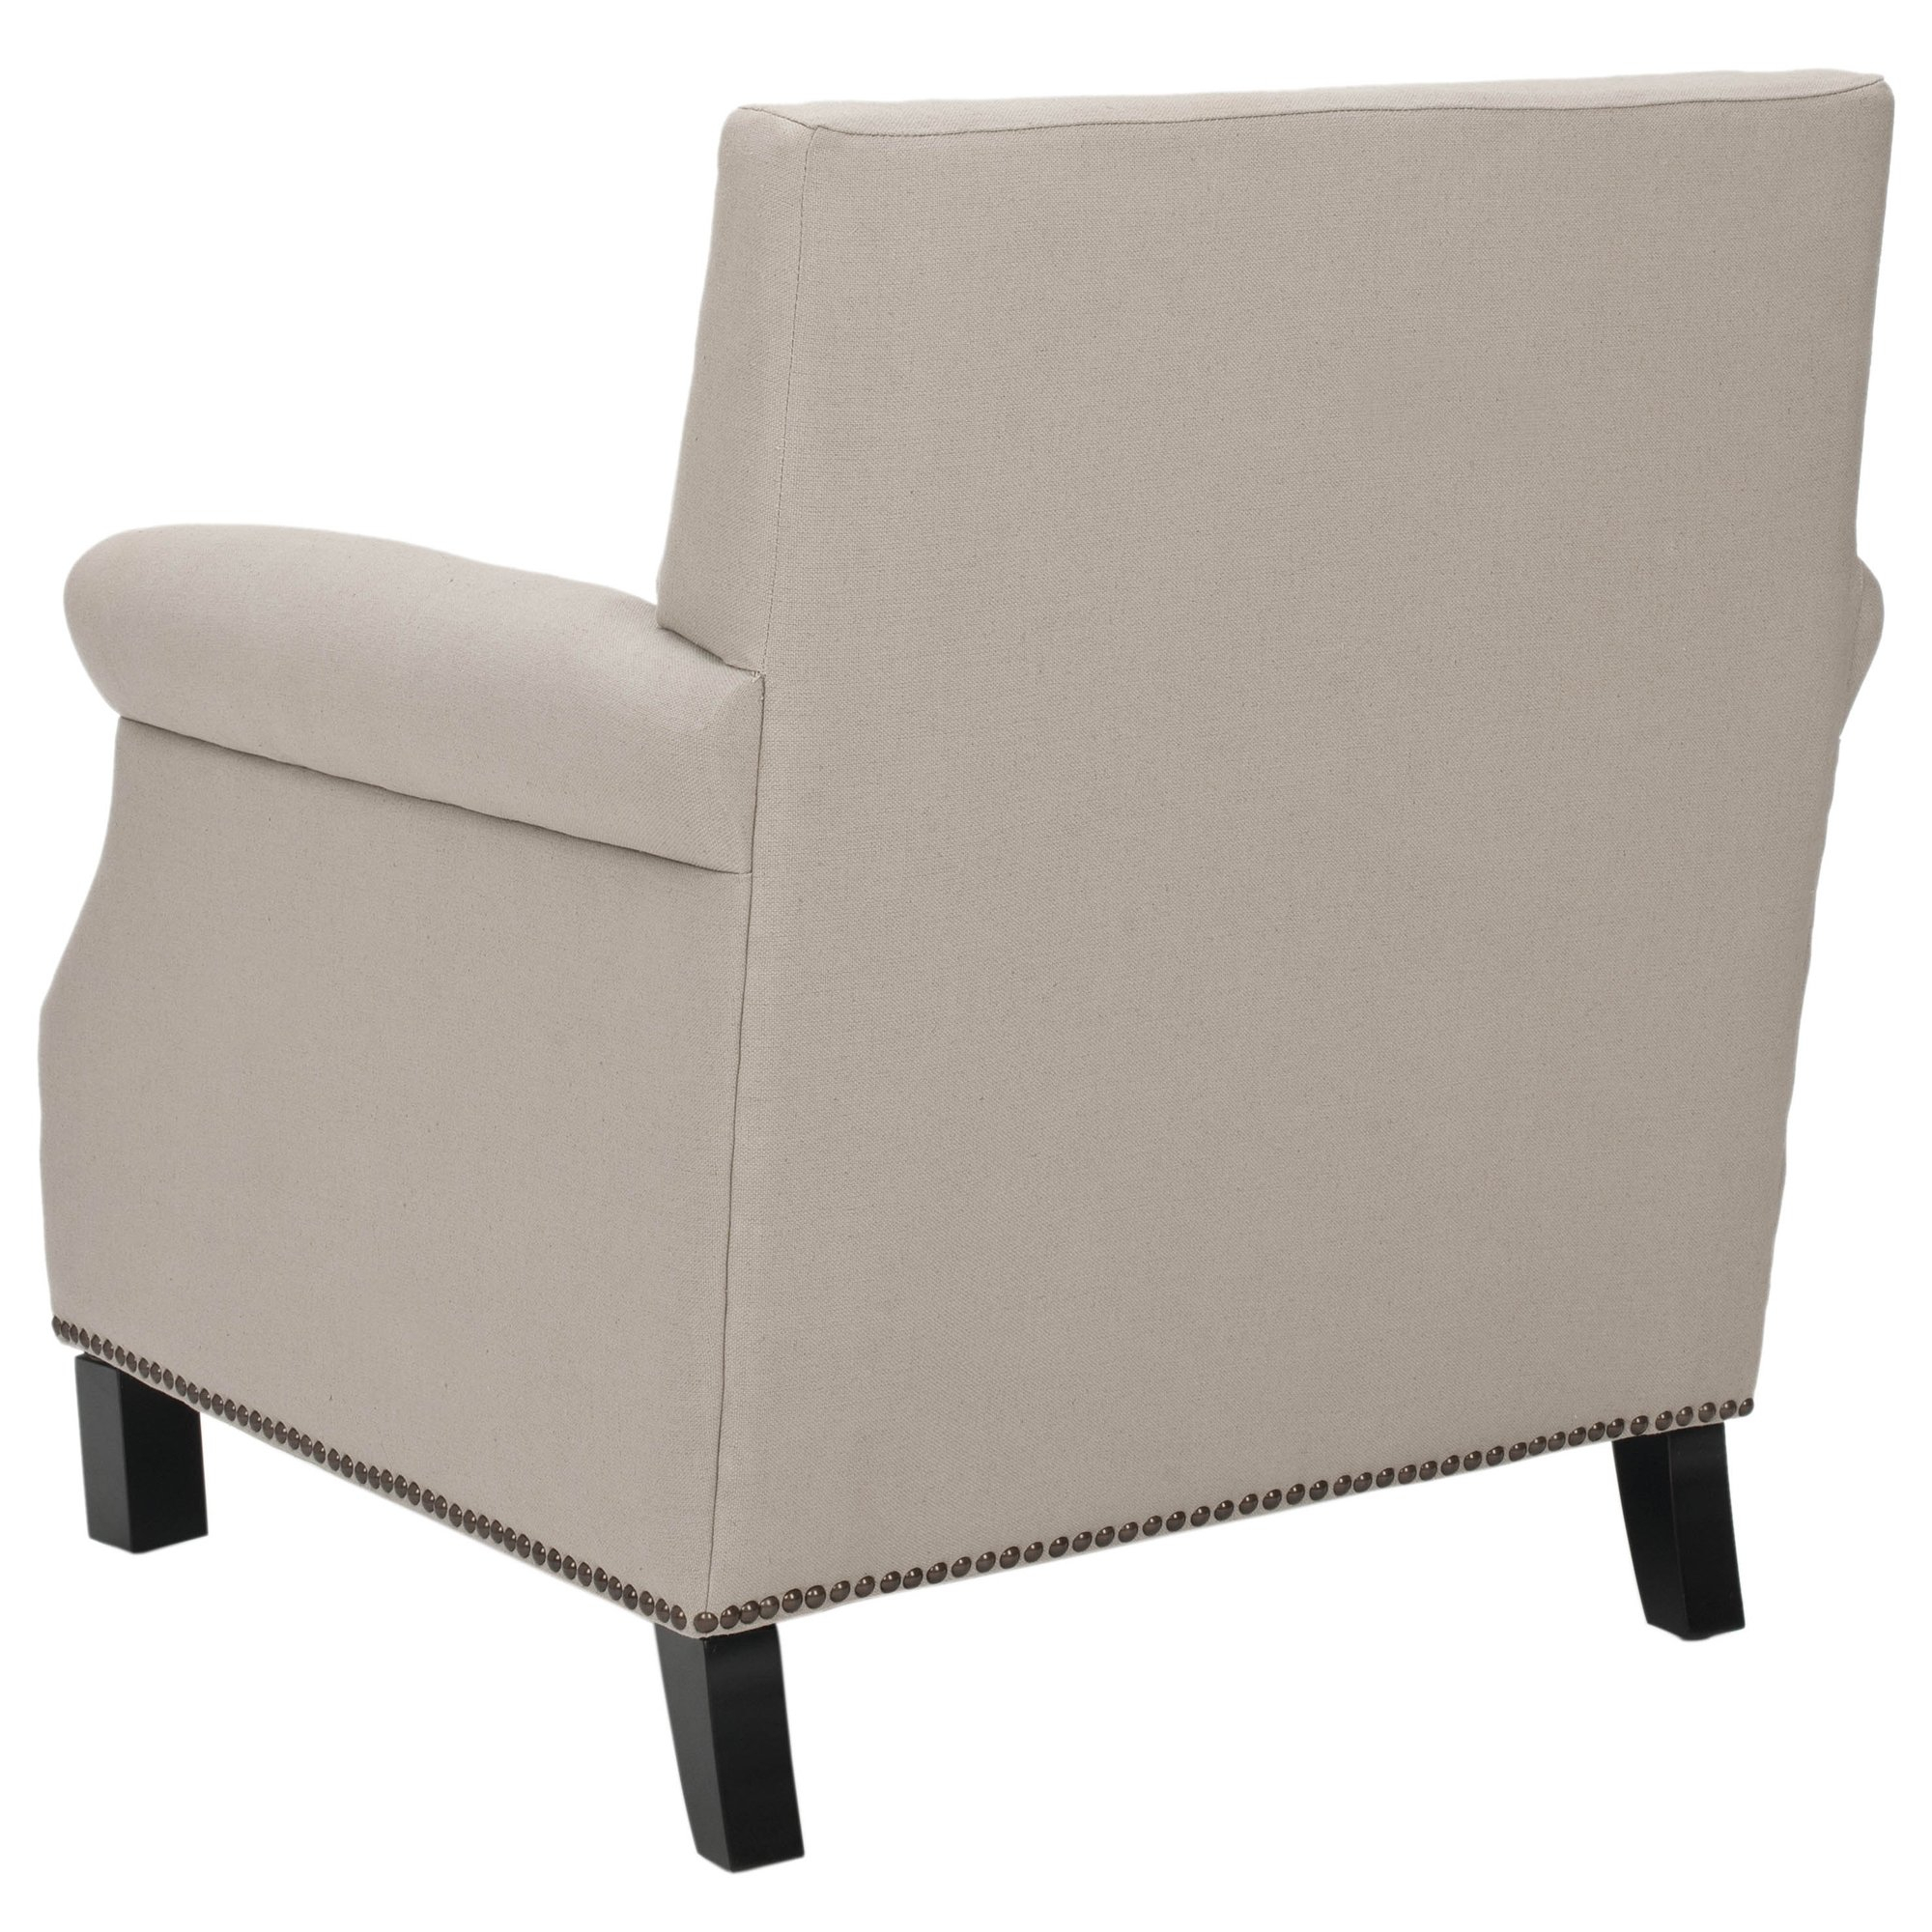 Safavieh Mercer Collection Charles Beige Linen Club Chair Furniture Throughout Mansfield Beige Linen Sofa Chairs (Image 21 of 25)